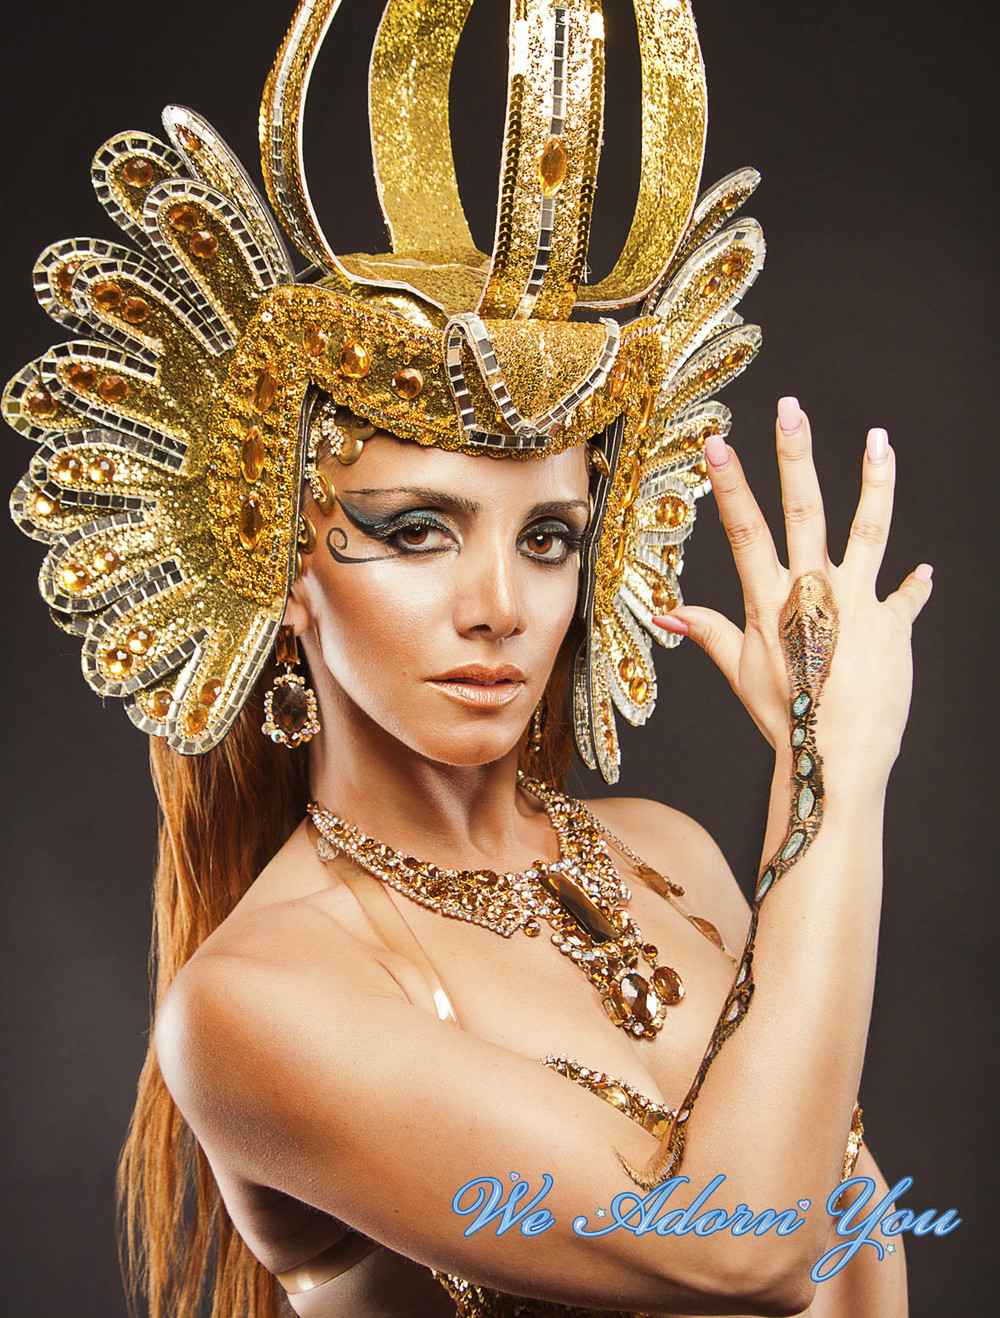 Body Painting Anna Pipoyan Cleopatra - We Adorn You.jpg